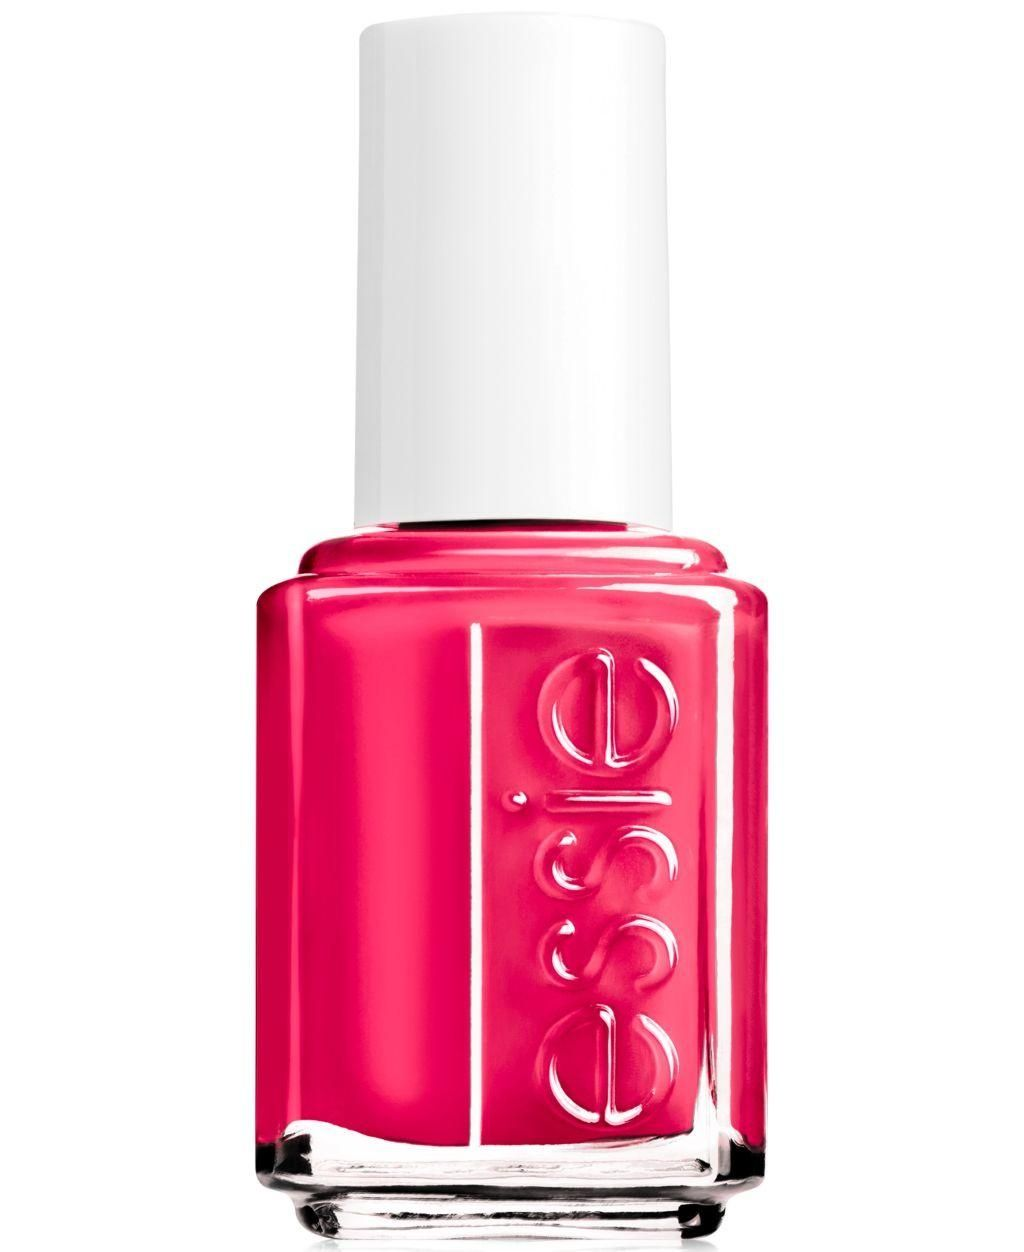 essie nail color, double breasted jacket - Brought to you by Avarsha ...